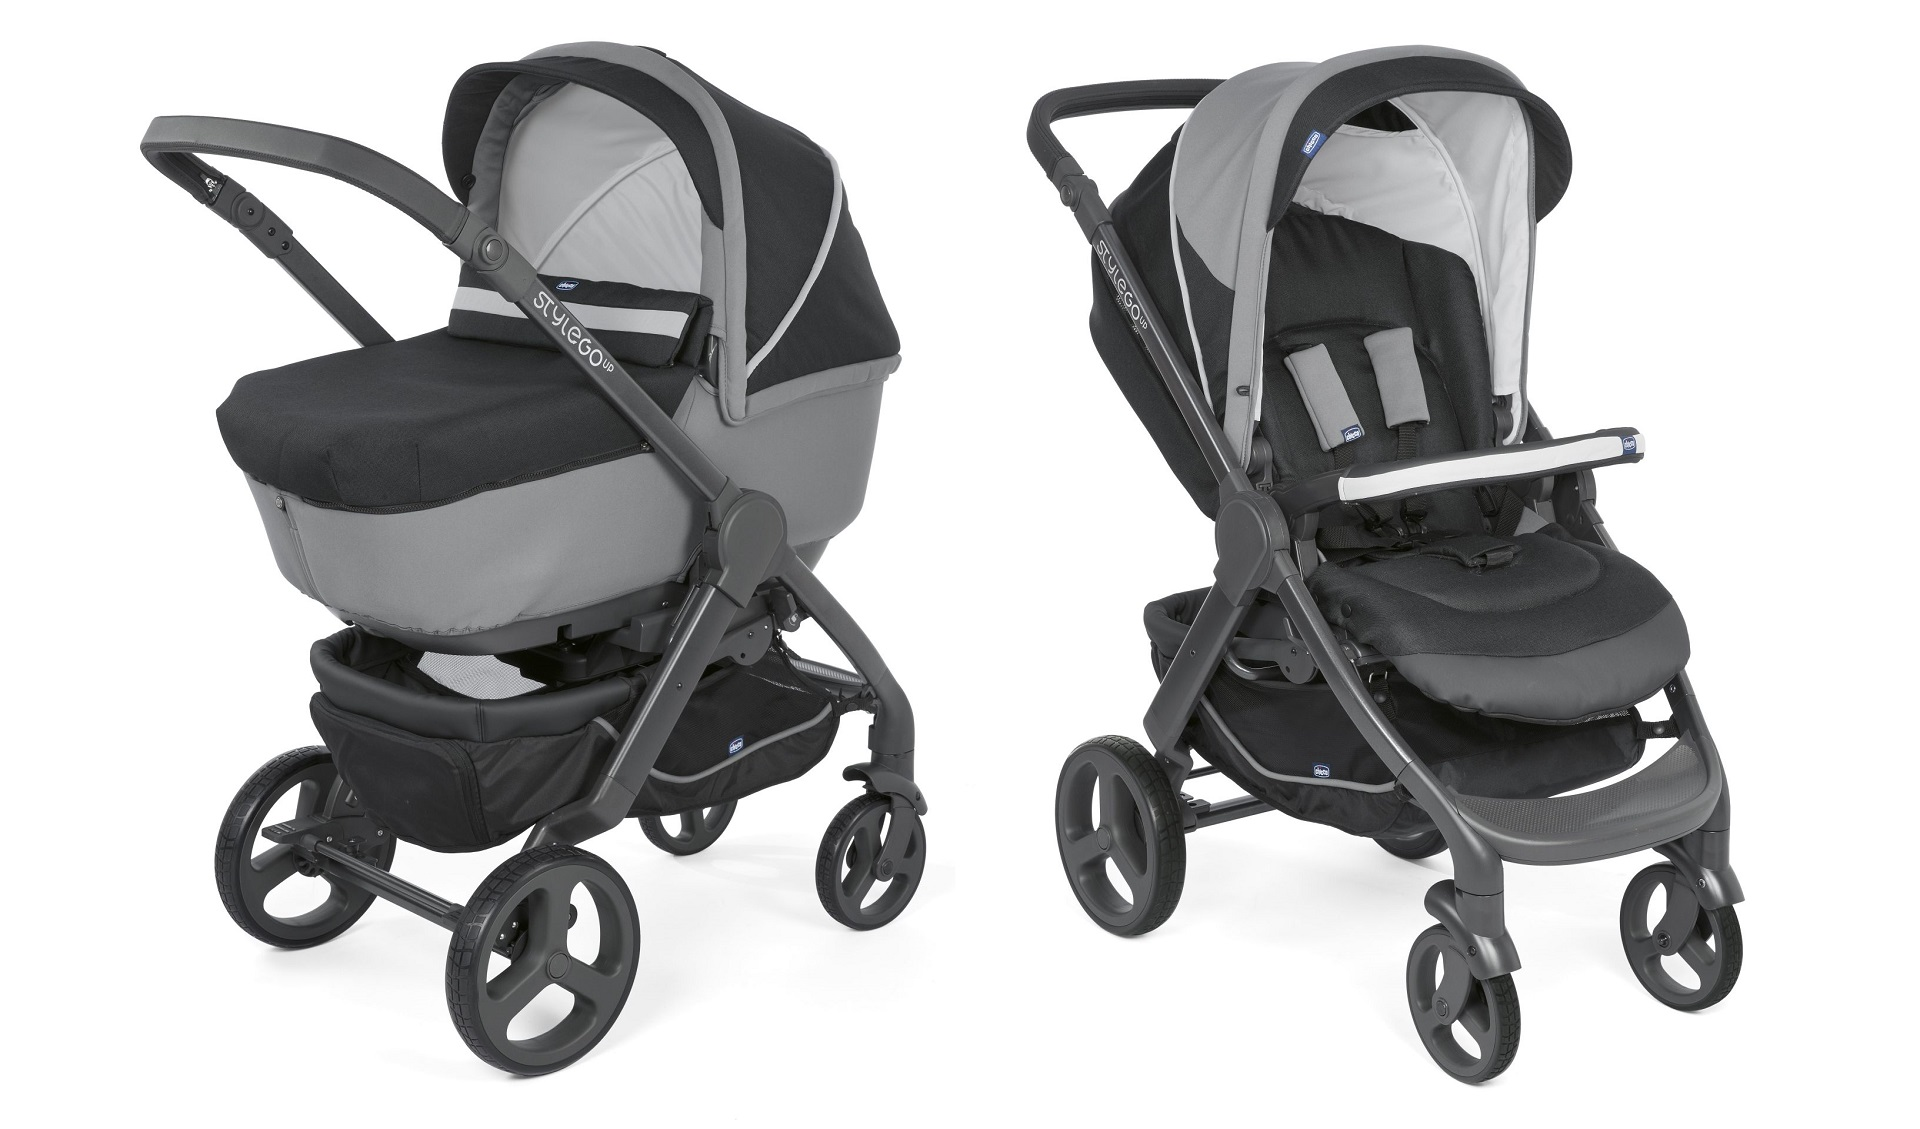 chicco stroller duo style go up crossover buy at. Black Bedroom Furniture Sets. Home Design Ideas